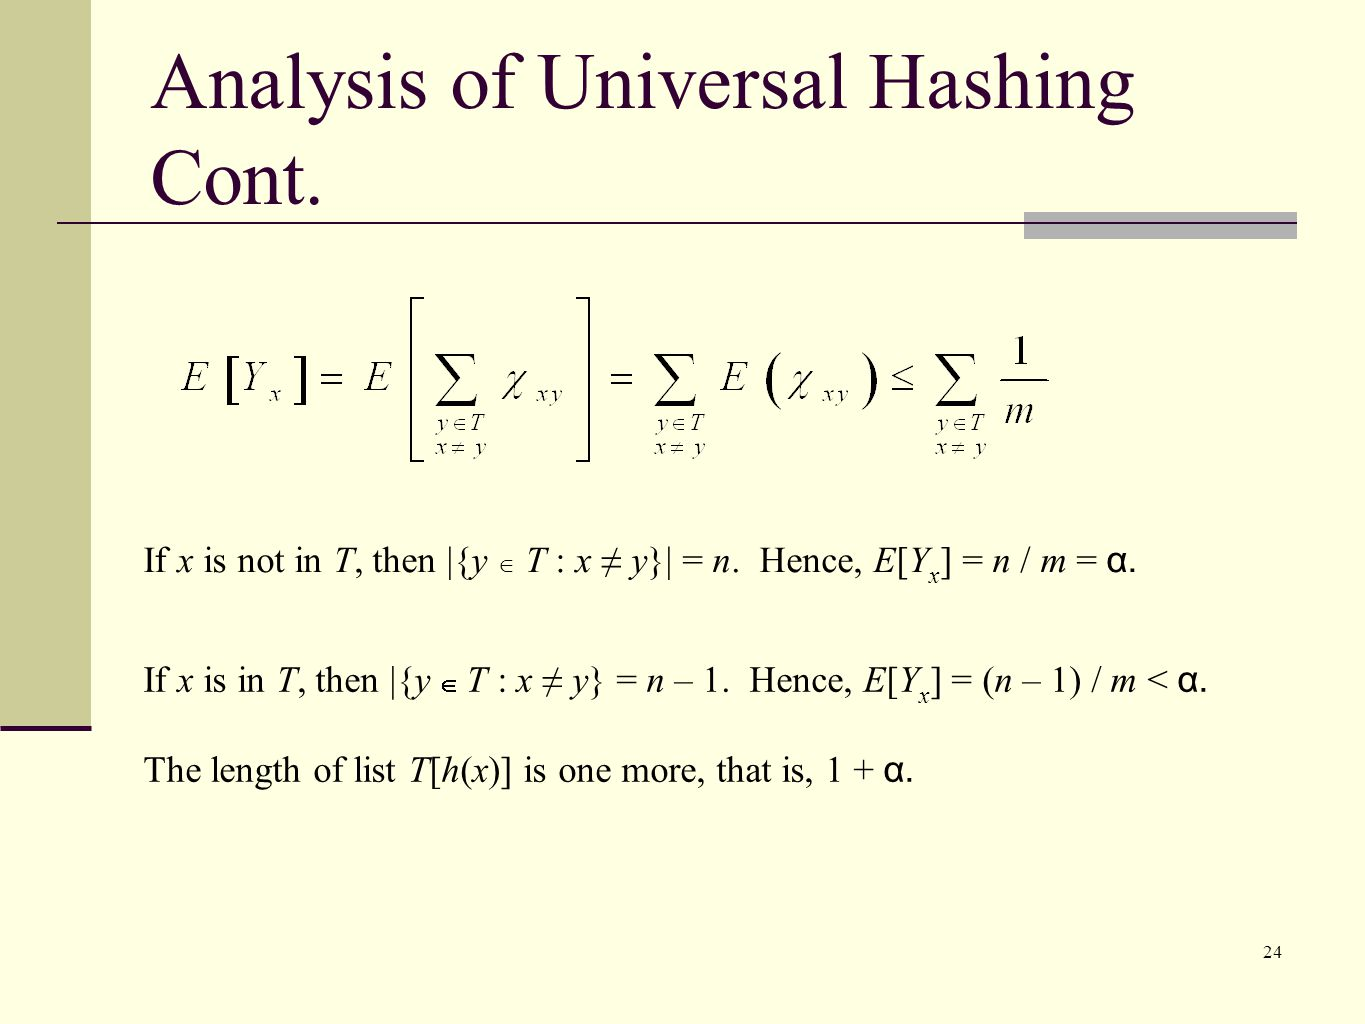 Analysis of Universal Hashing Cont.